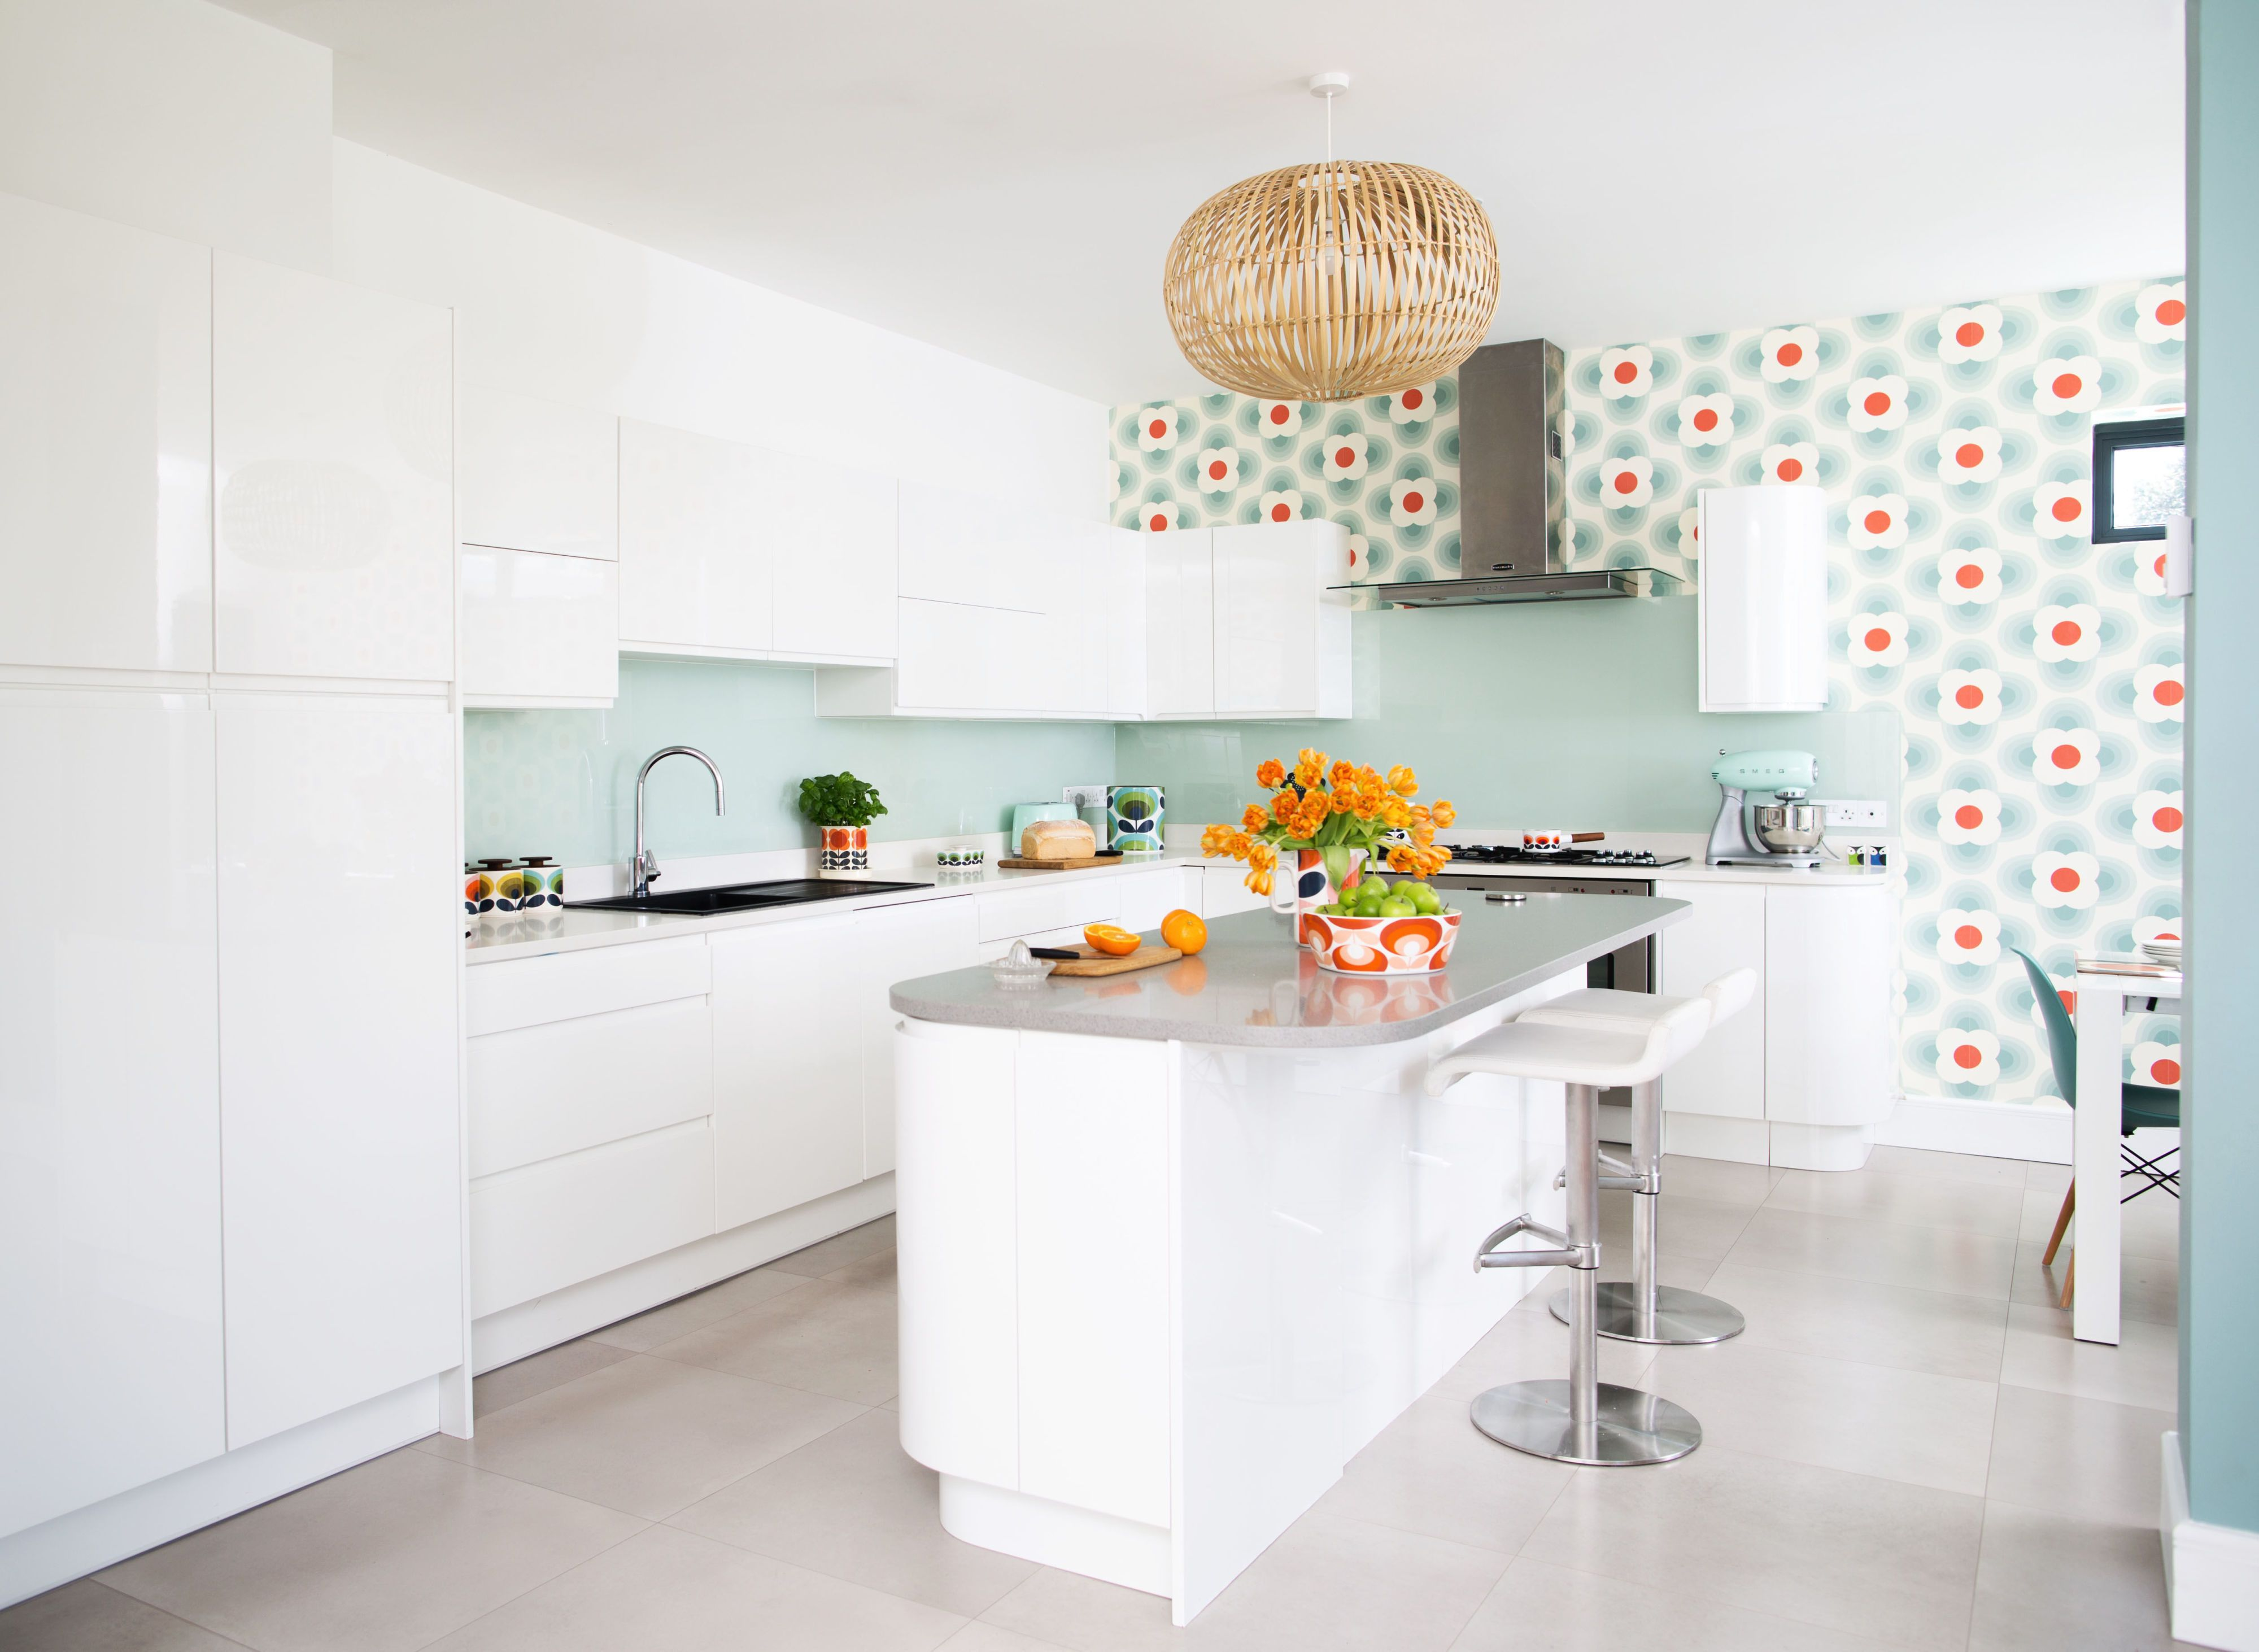 Orla Kiely Wallpaper Brings Colourful Retro Look To New Kitchen Design Slater kitchen makeover